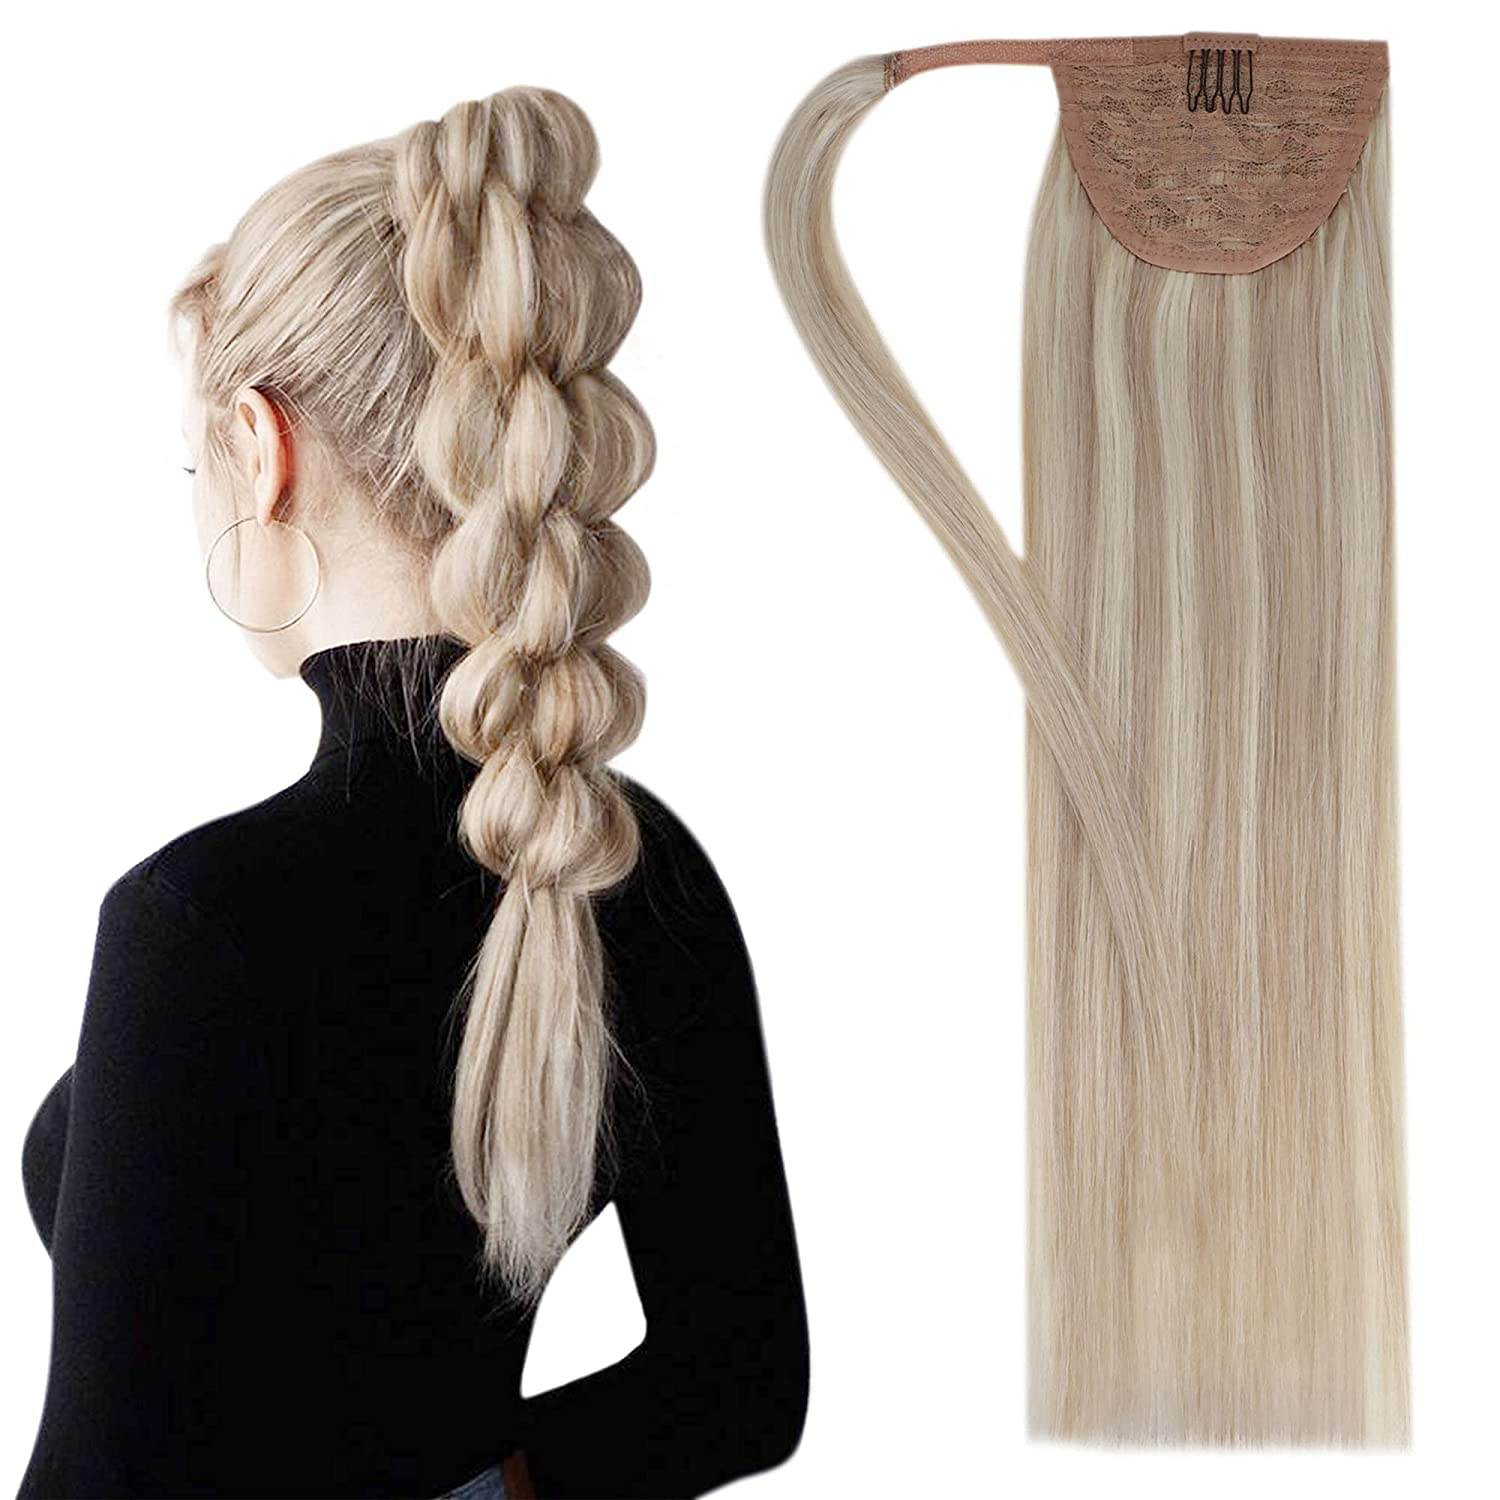 Easyouth Ponytail unisex Hair Extensions Remy Human OFFer Blond Ash Dark